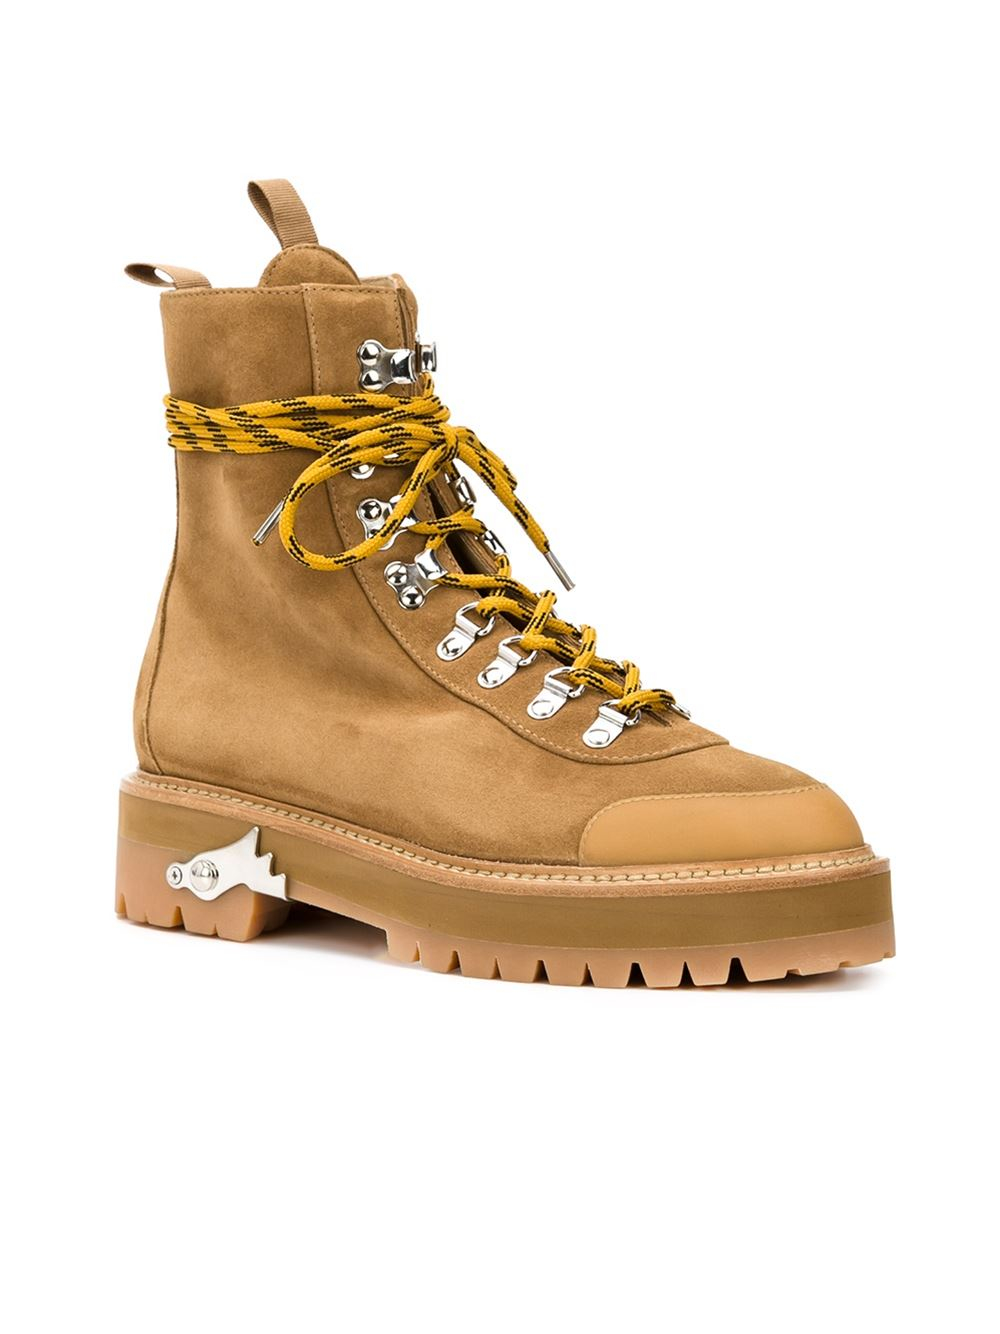 Brown Hiking Boots Off-white 100% Guaranteed Online 8hhW8S0t